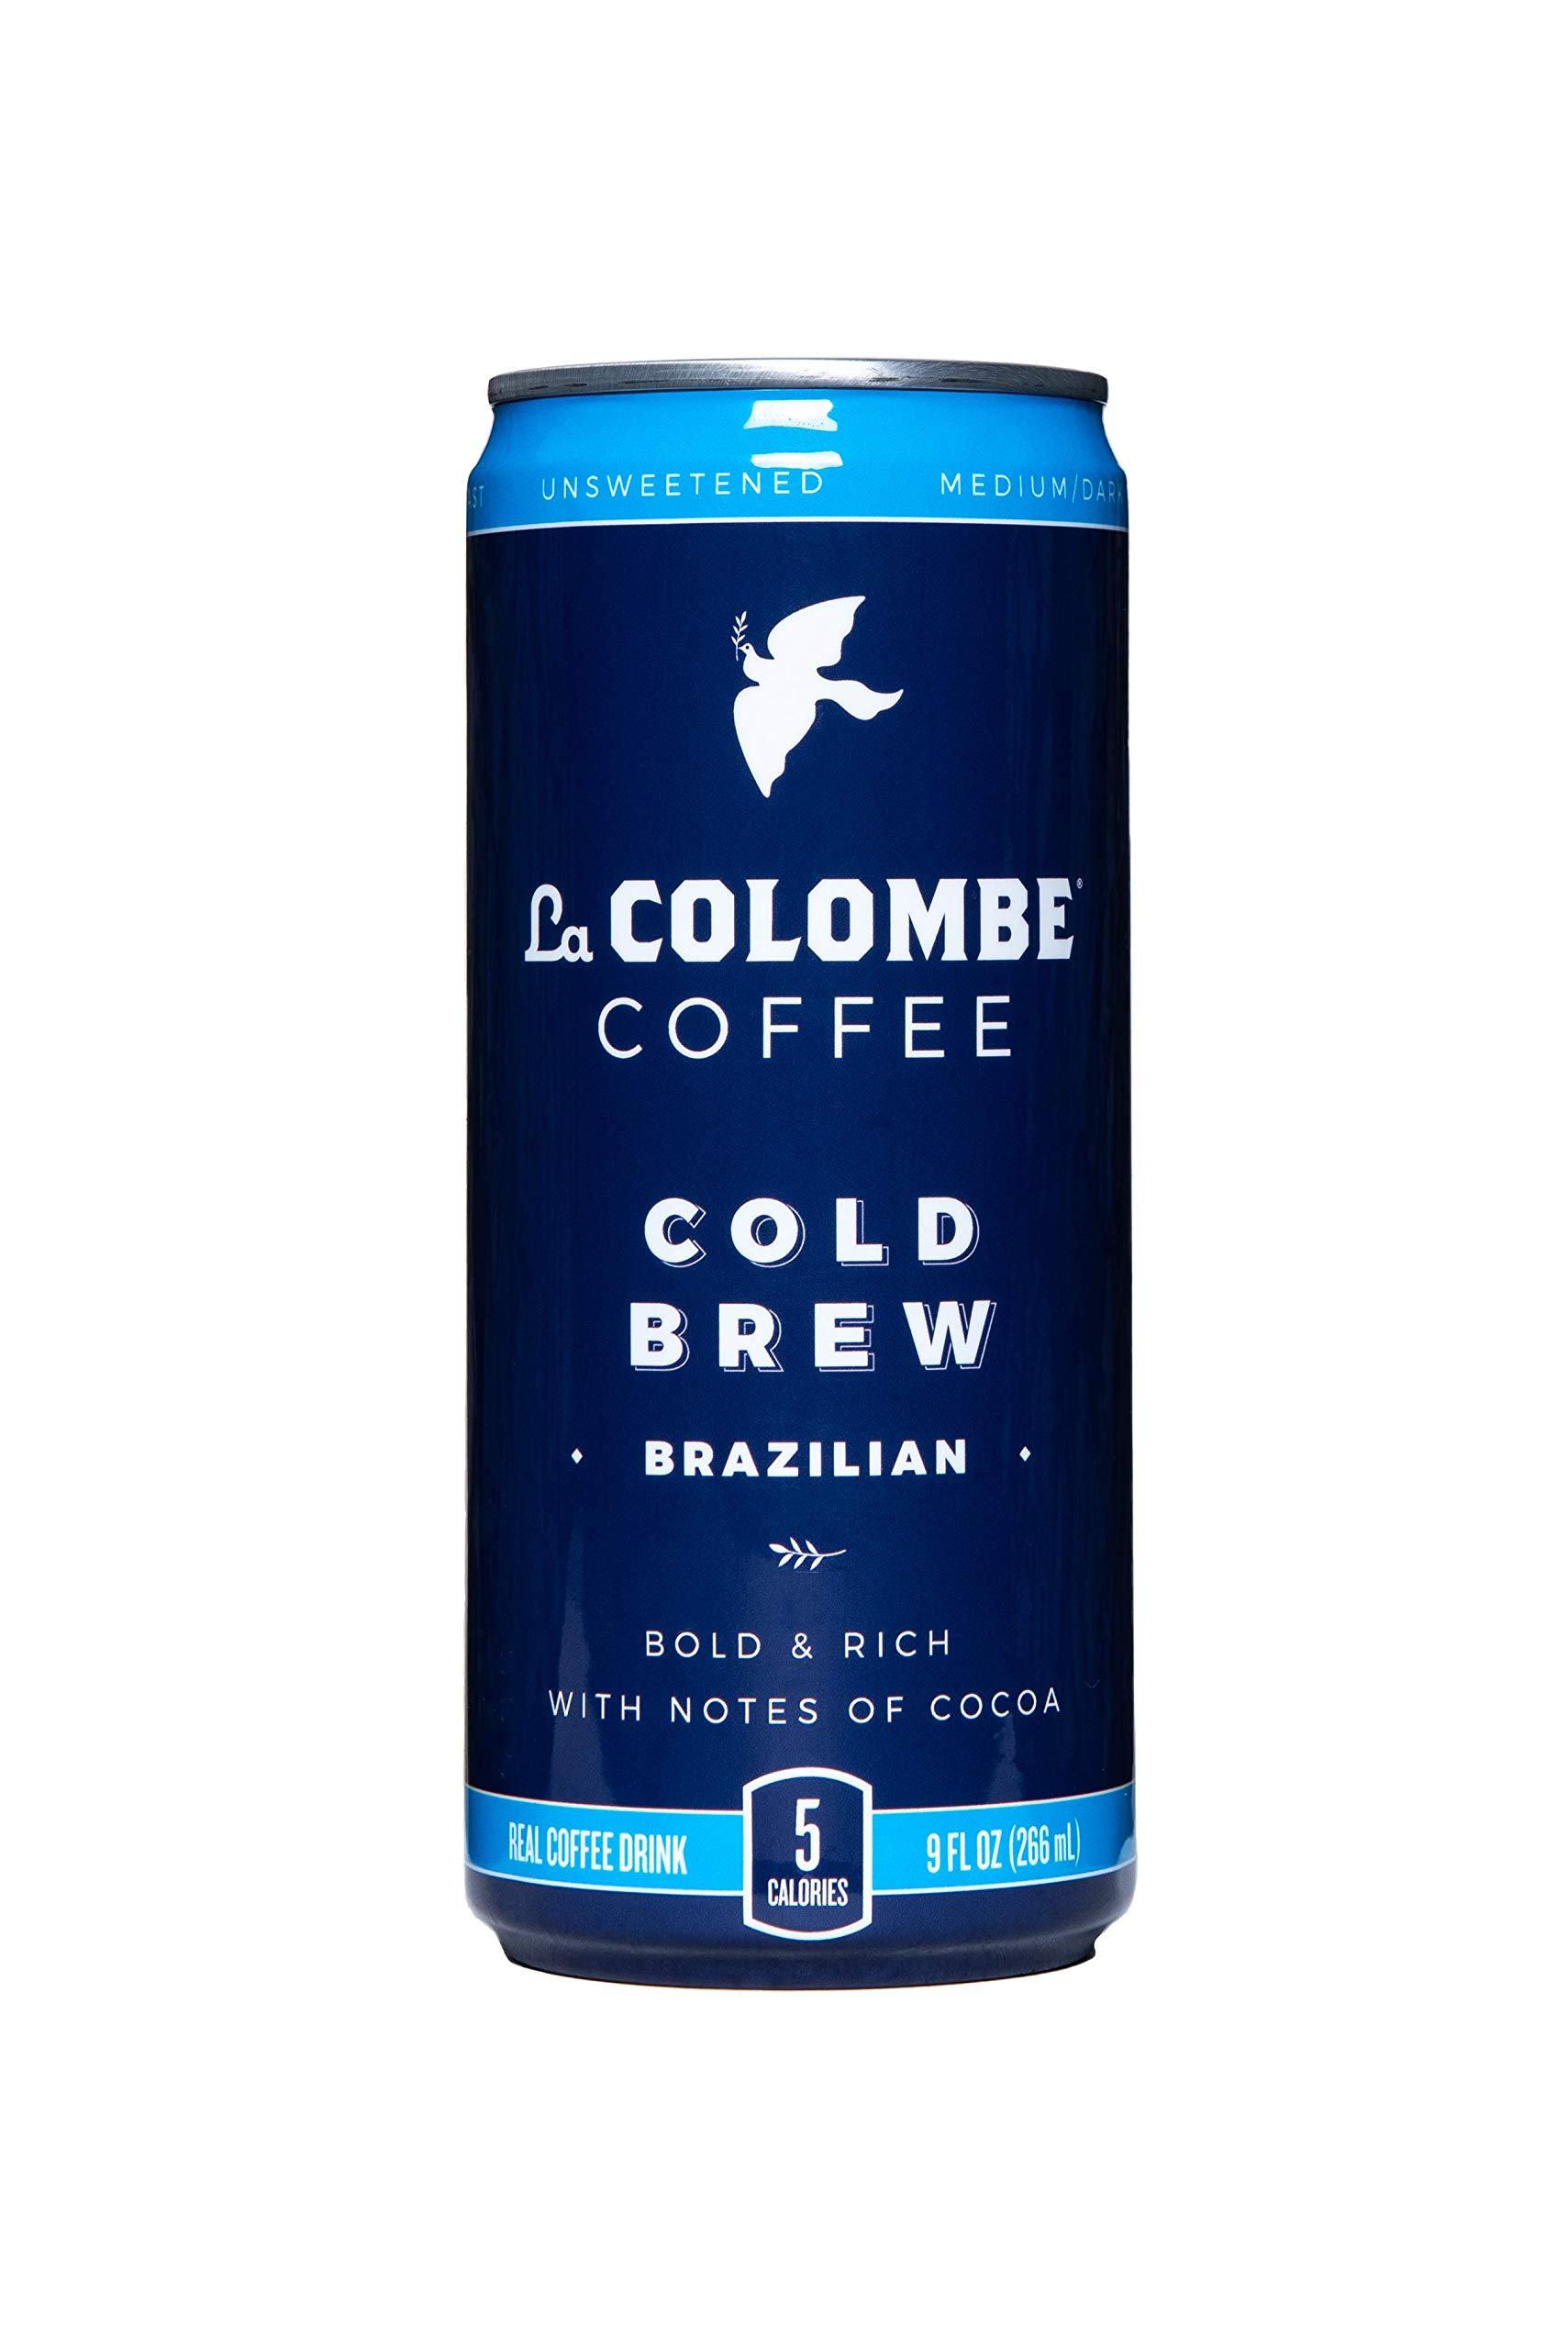 La Colombe Pure Black Cold-Pressed Coffee - 9 Fluid Ounce, 4 Count - Medium Roast, Single-Origin Cold Brew - Made With Real Ingredients - No Sugar Added - Grab And Go Coffee